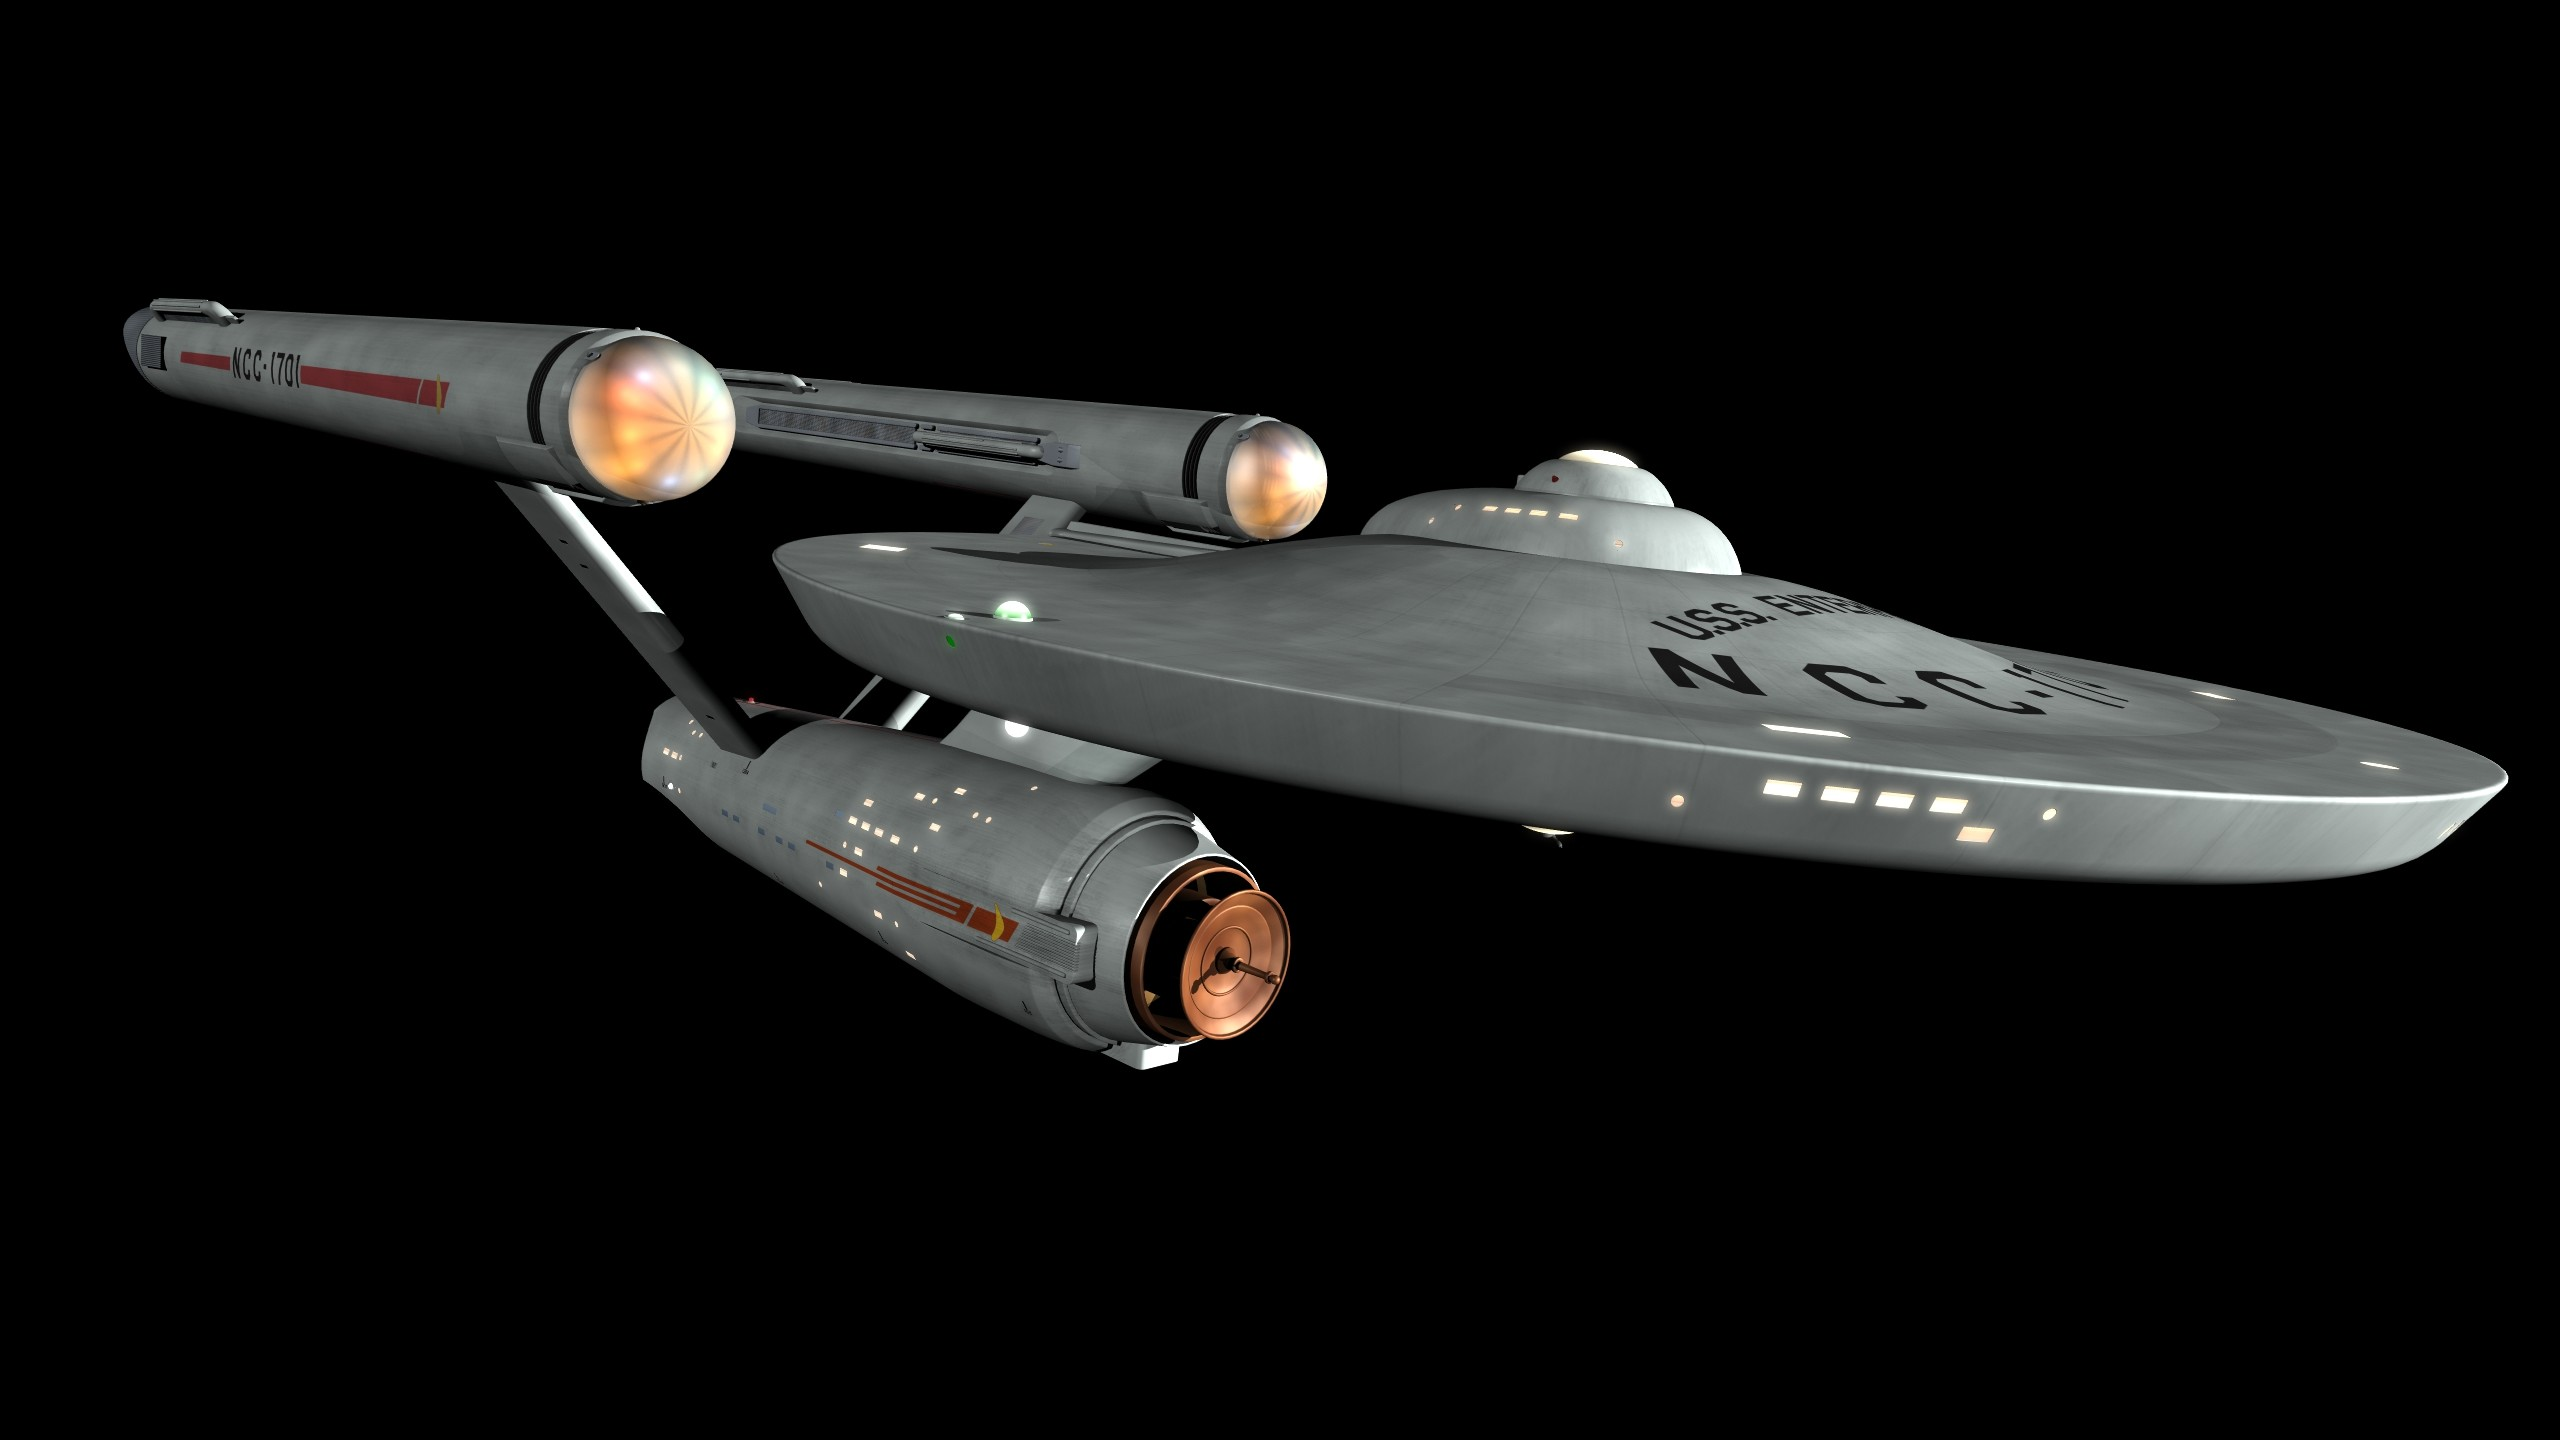 2560x1440 ... Star Trek the Next Generation on Board the U.S.S. Enterprise NCC .